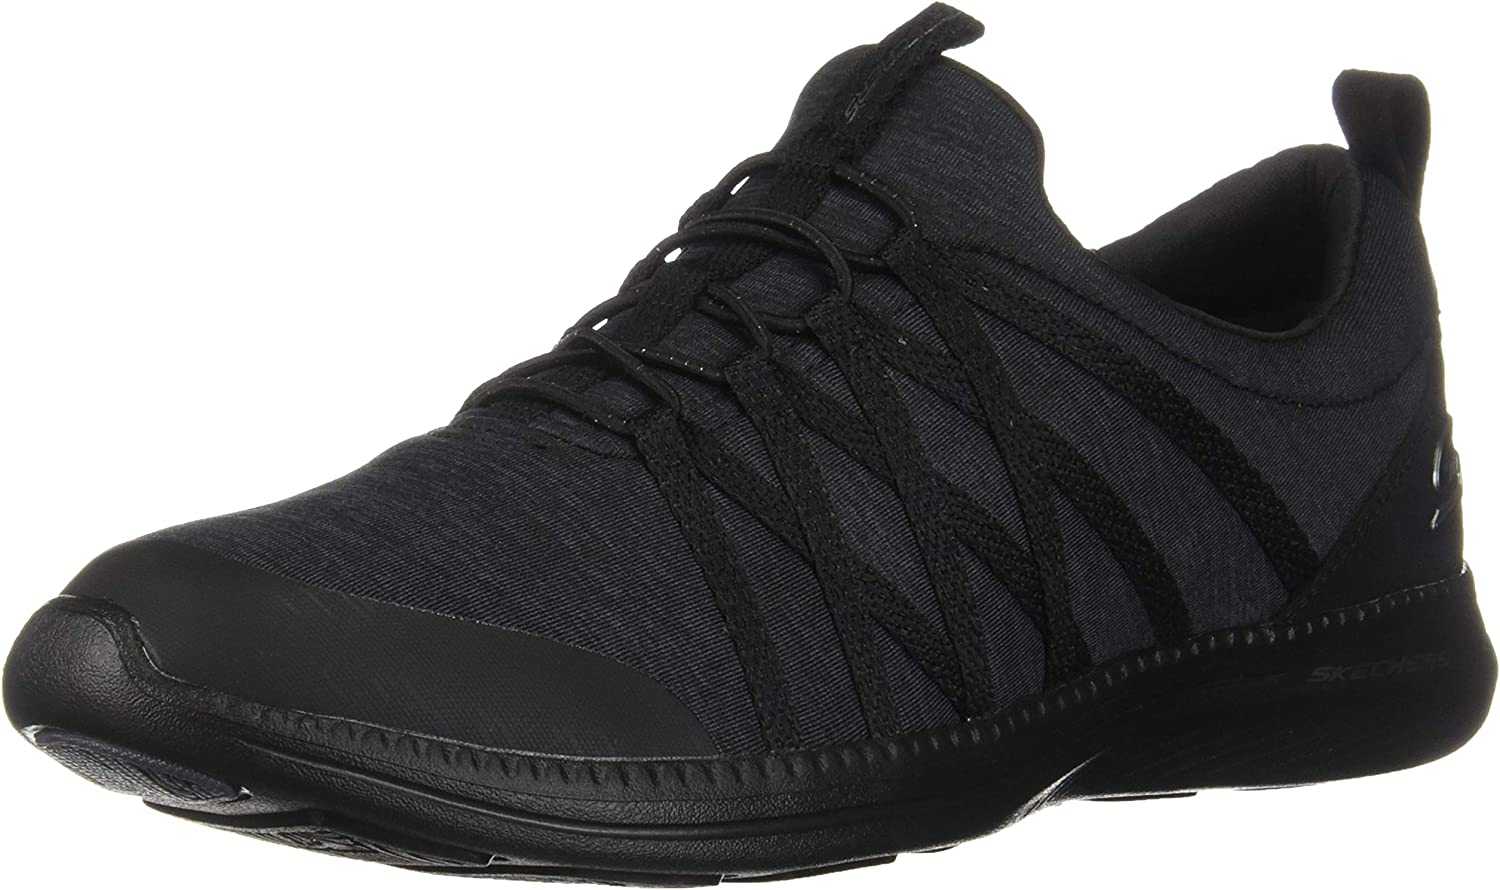 Skechers 2021 new Women's City Pro-What a Vision High quality Sneaker